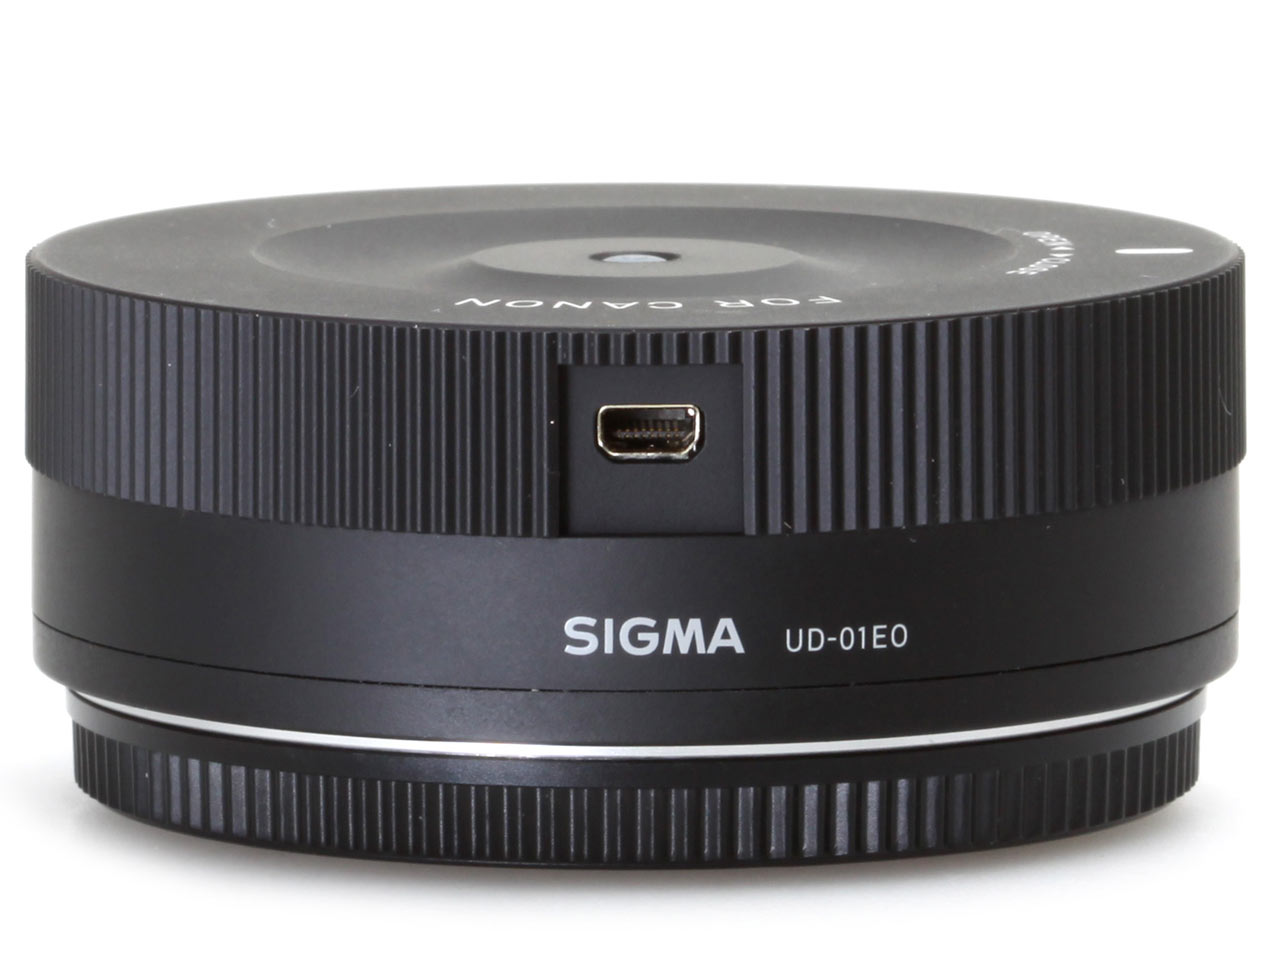 Sigma Usb Dock Quick Review Digital Photography Review